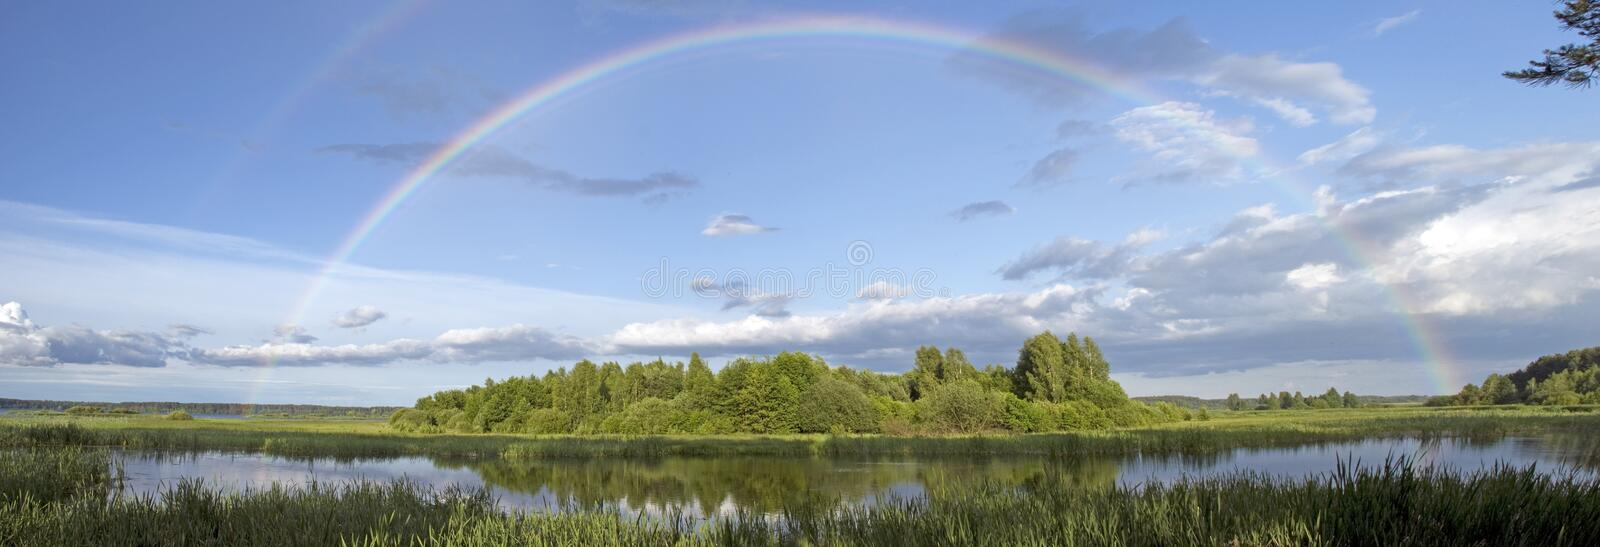 Rainbow landscape royalty free stock images